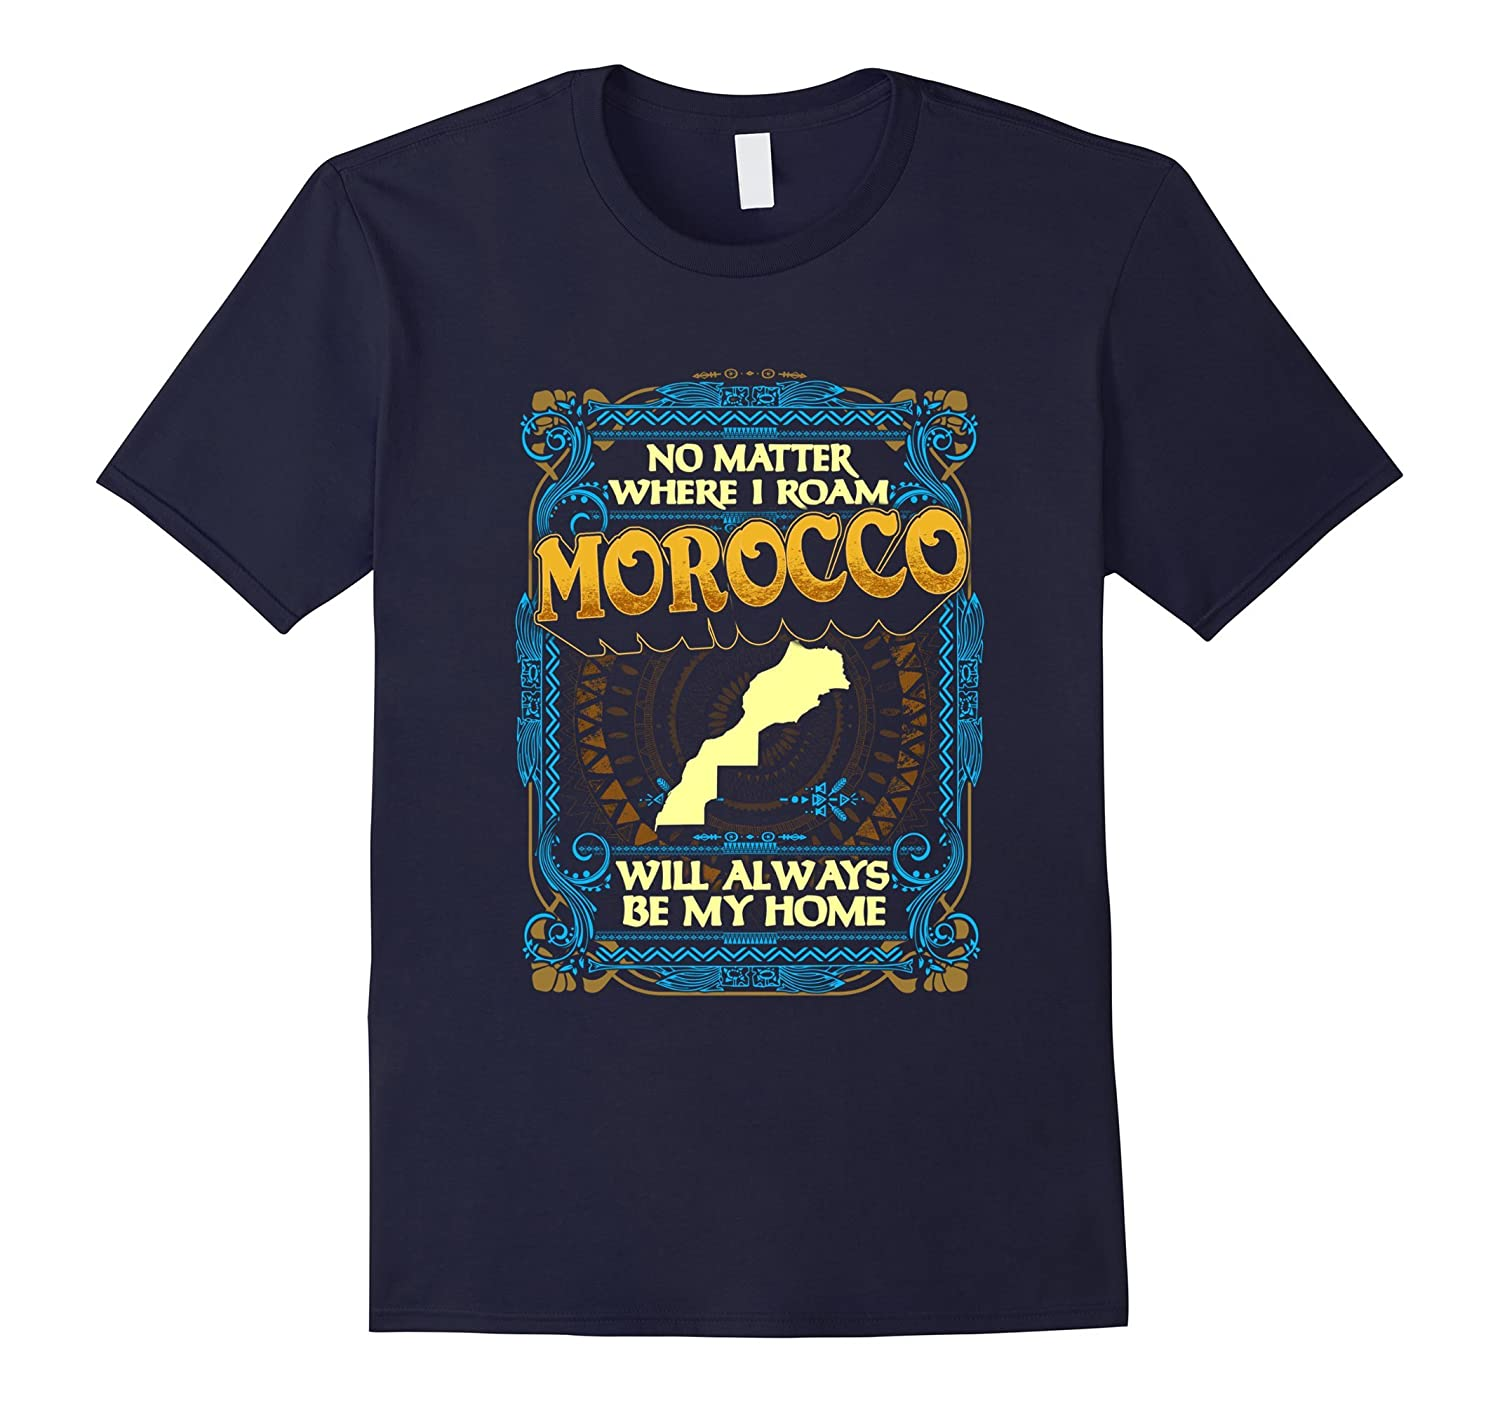 Morocco will always be my home-Vaci